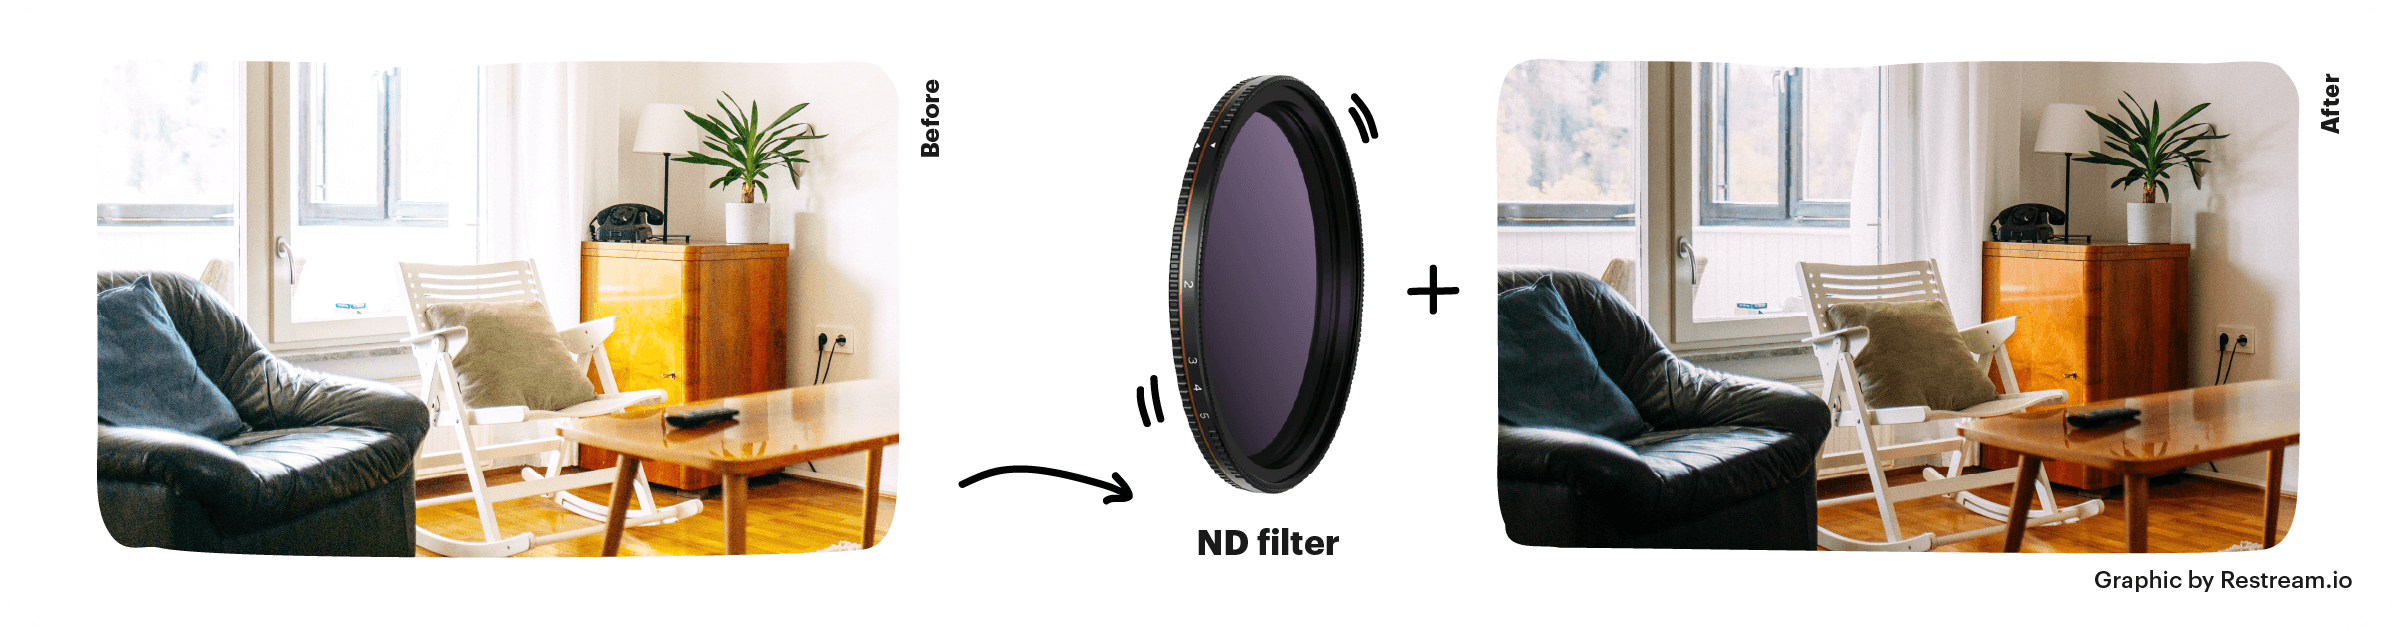 Before and After picture with ND Filter